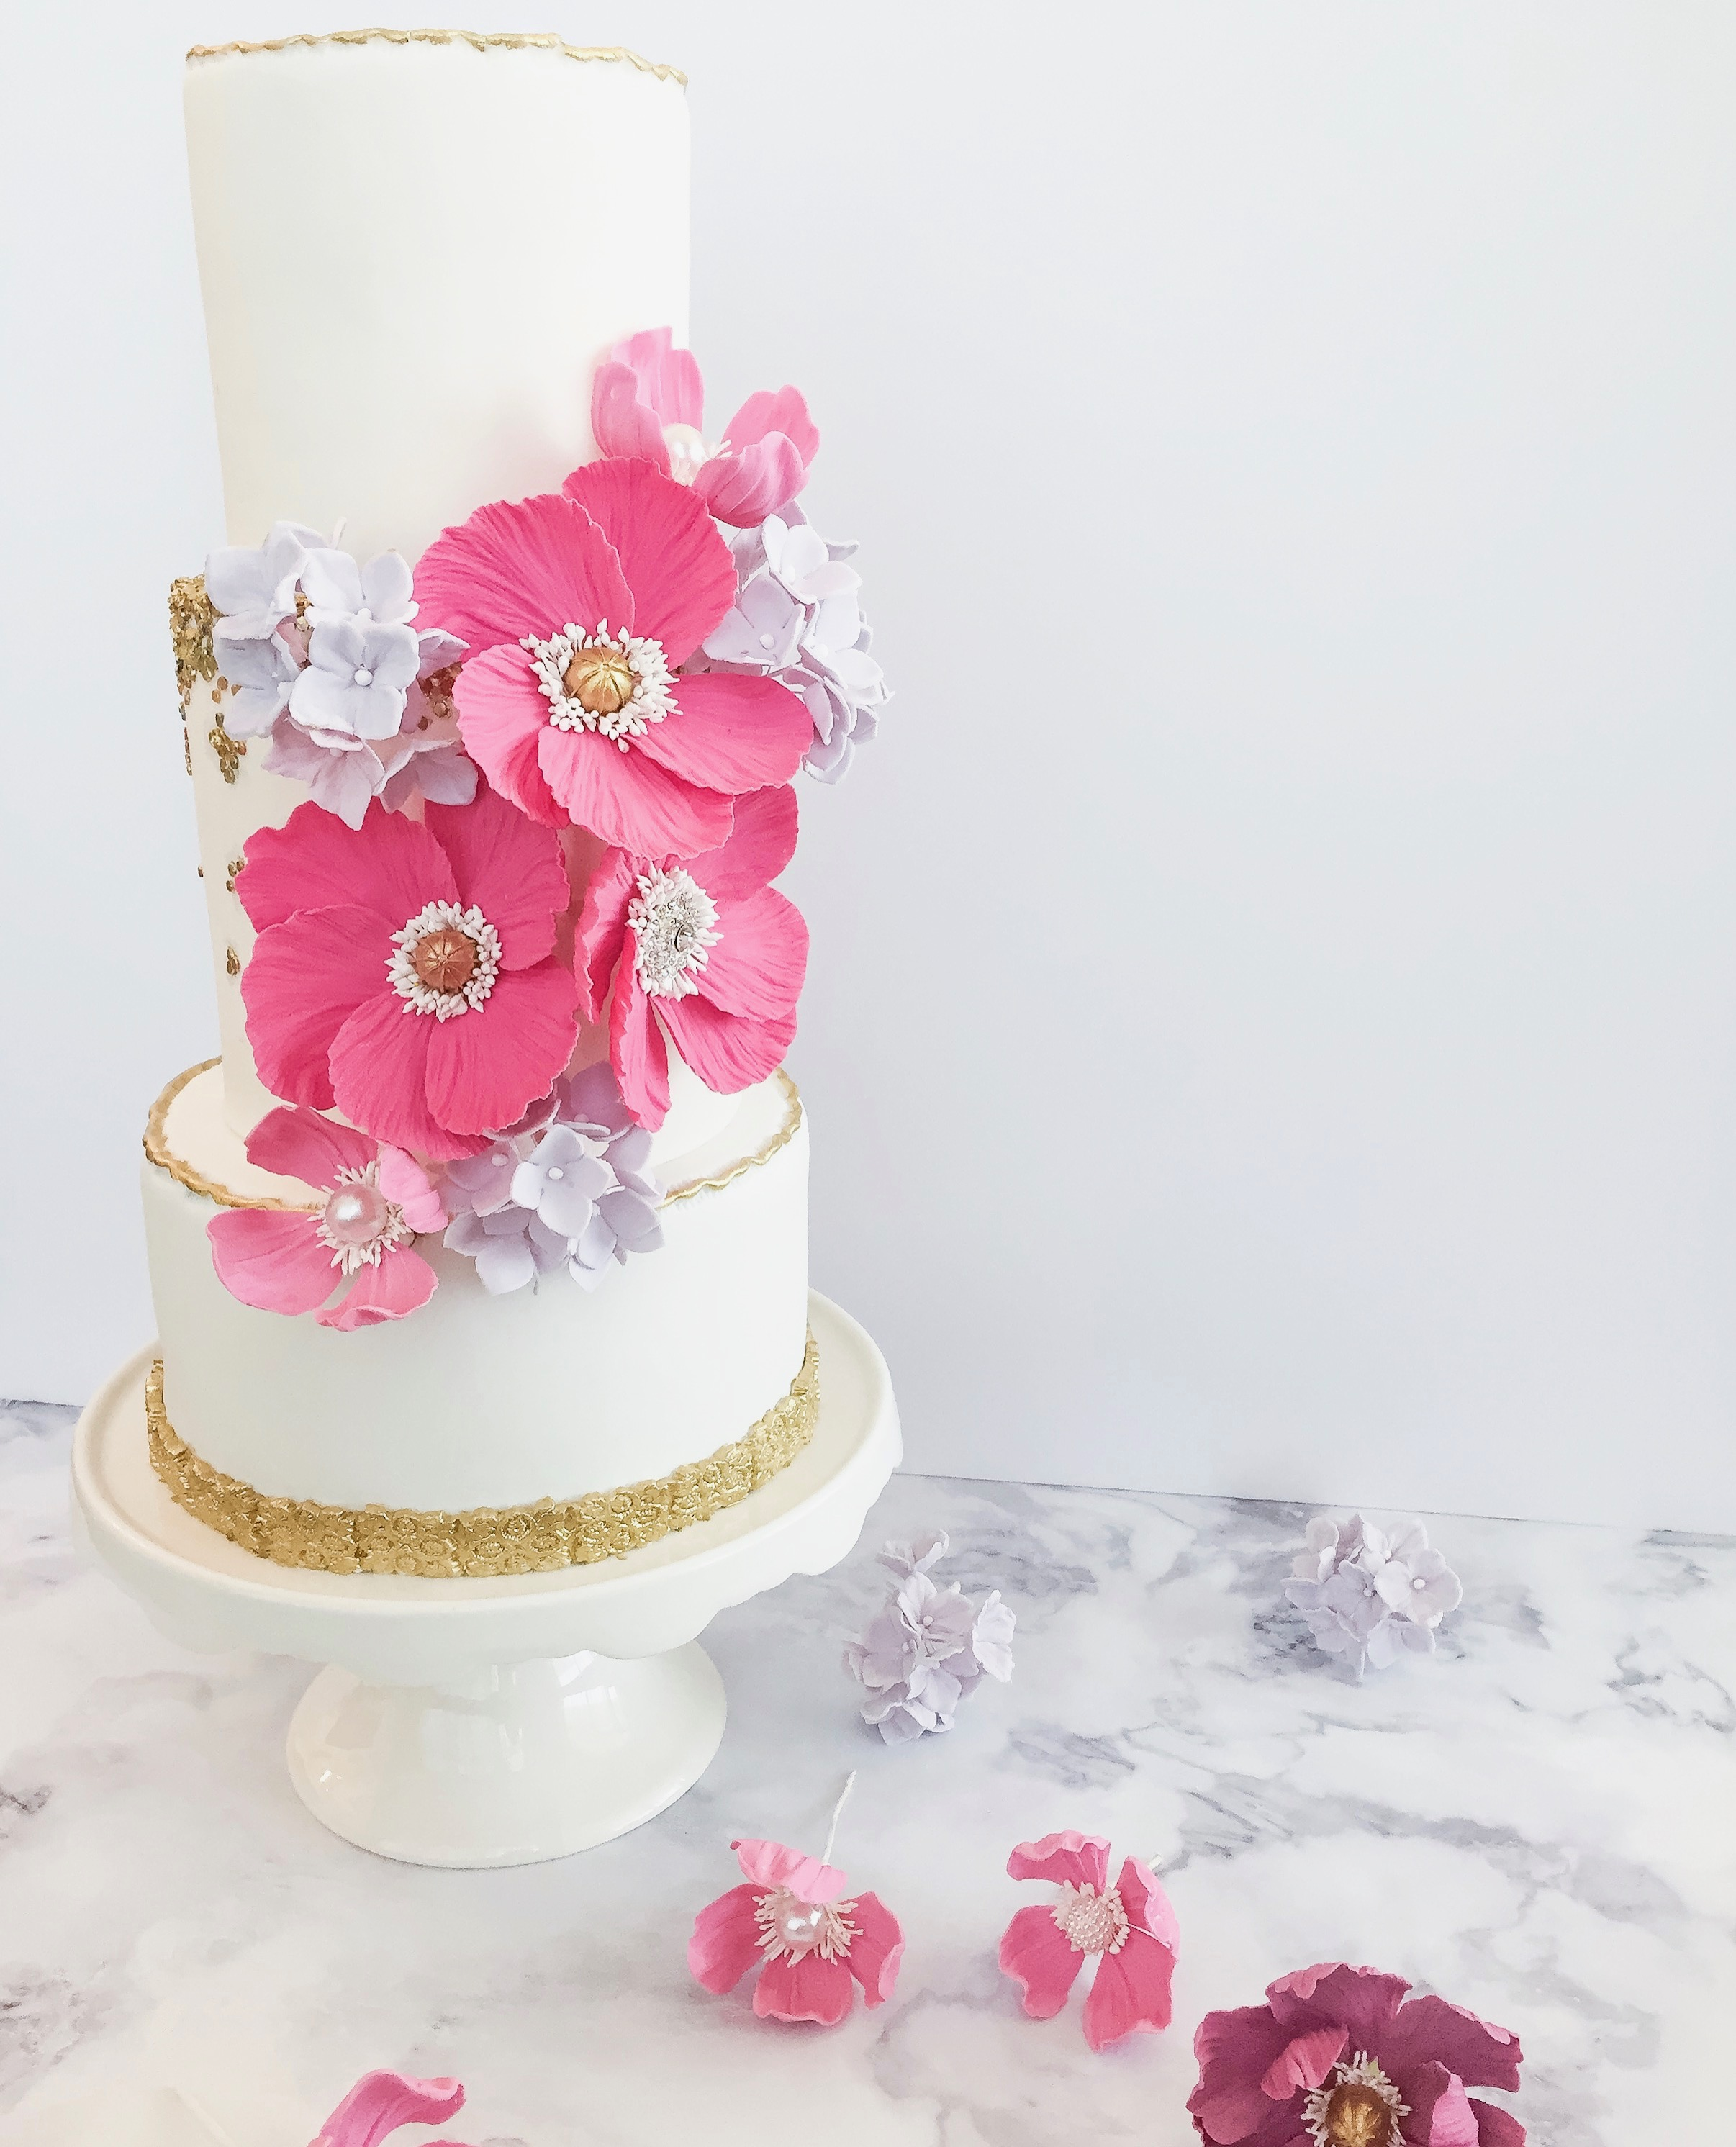 White wedding cake with bright pink sugar flowers